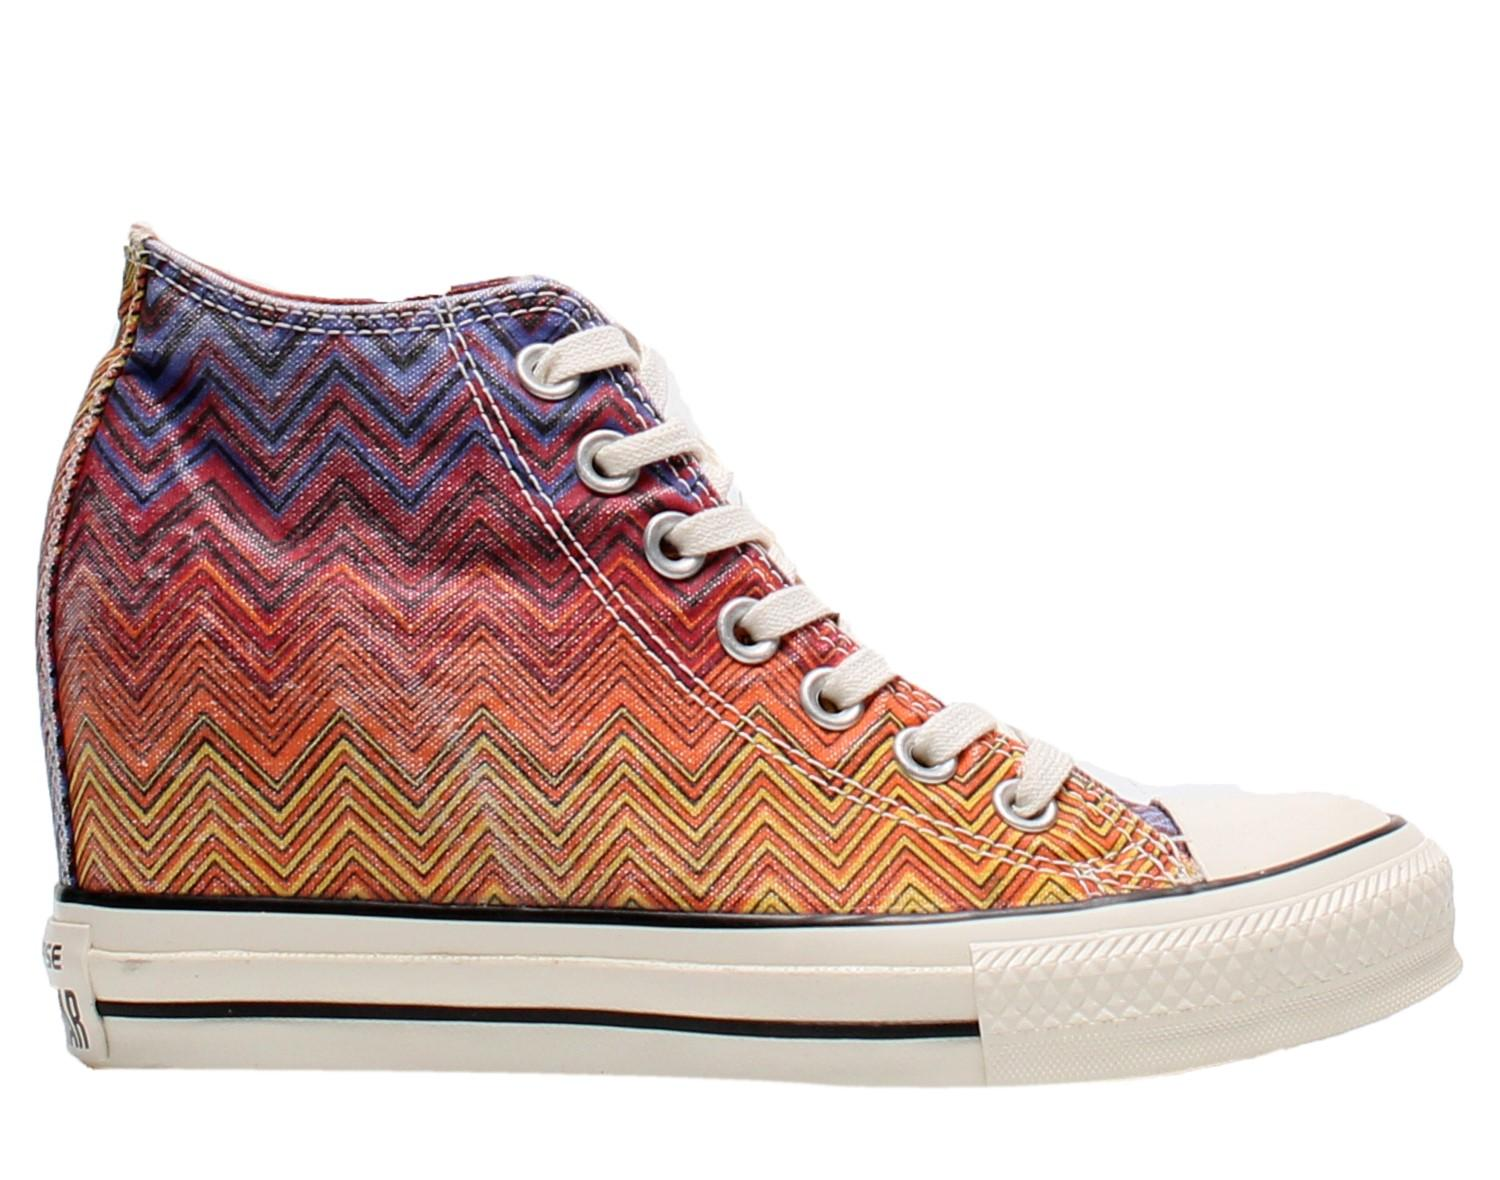 c6c6c6c10d7e Lyst - Converse Chuck Taylor All Star Lux Washed Canvas Womens ...